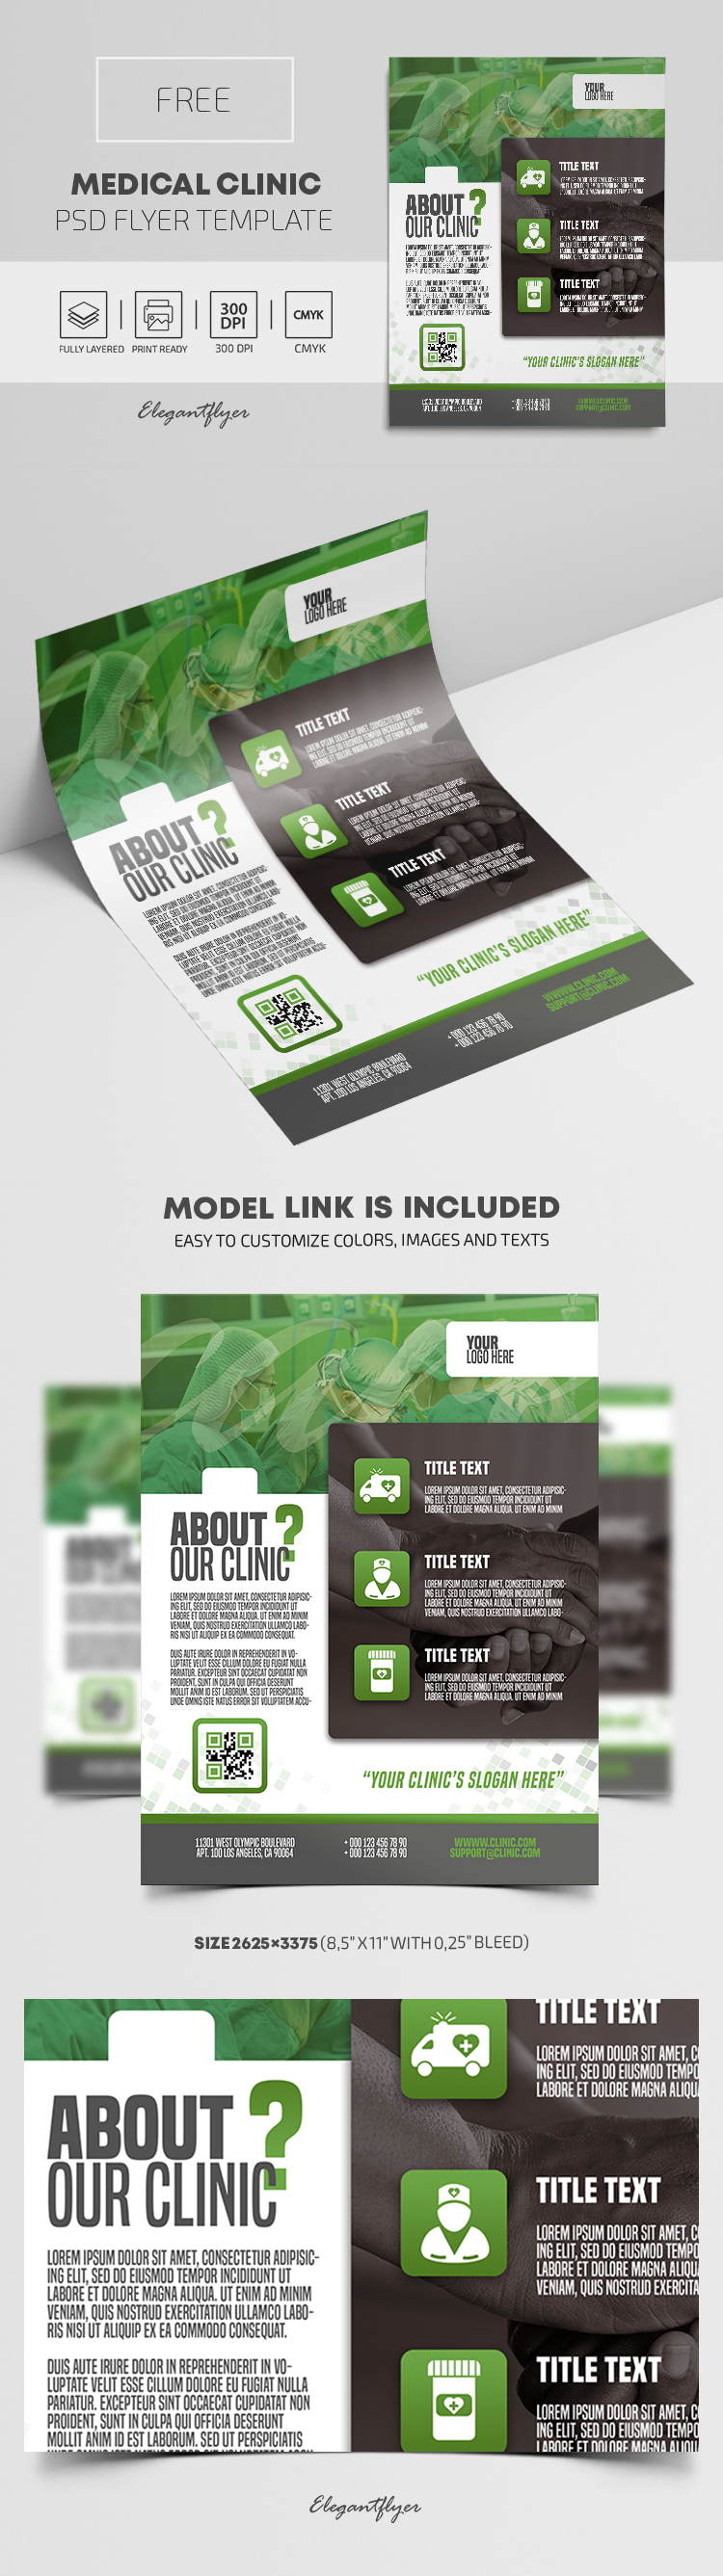 Medical Clinic – Free PSD Flyer Template